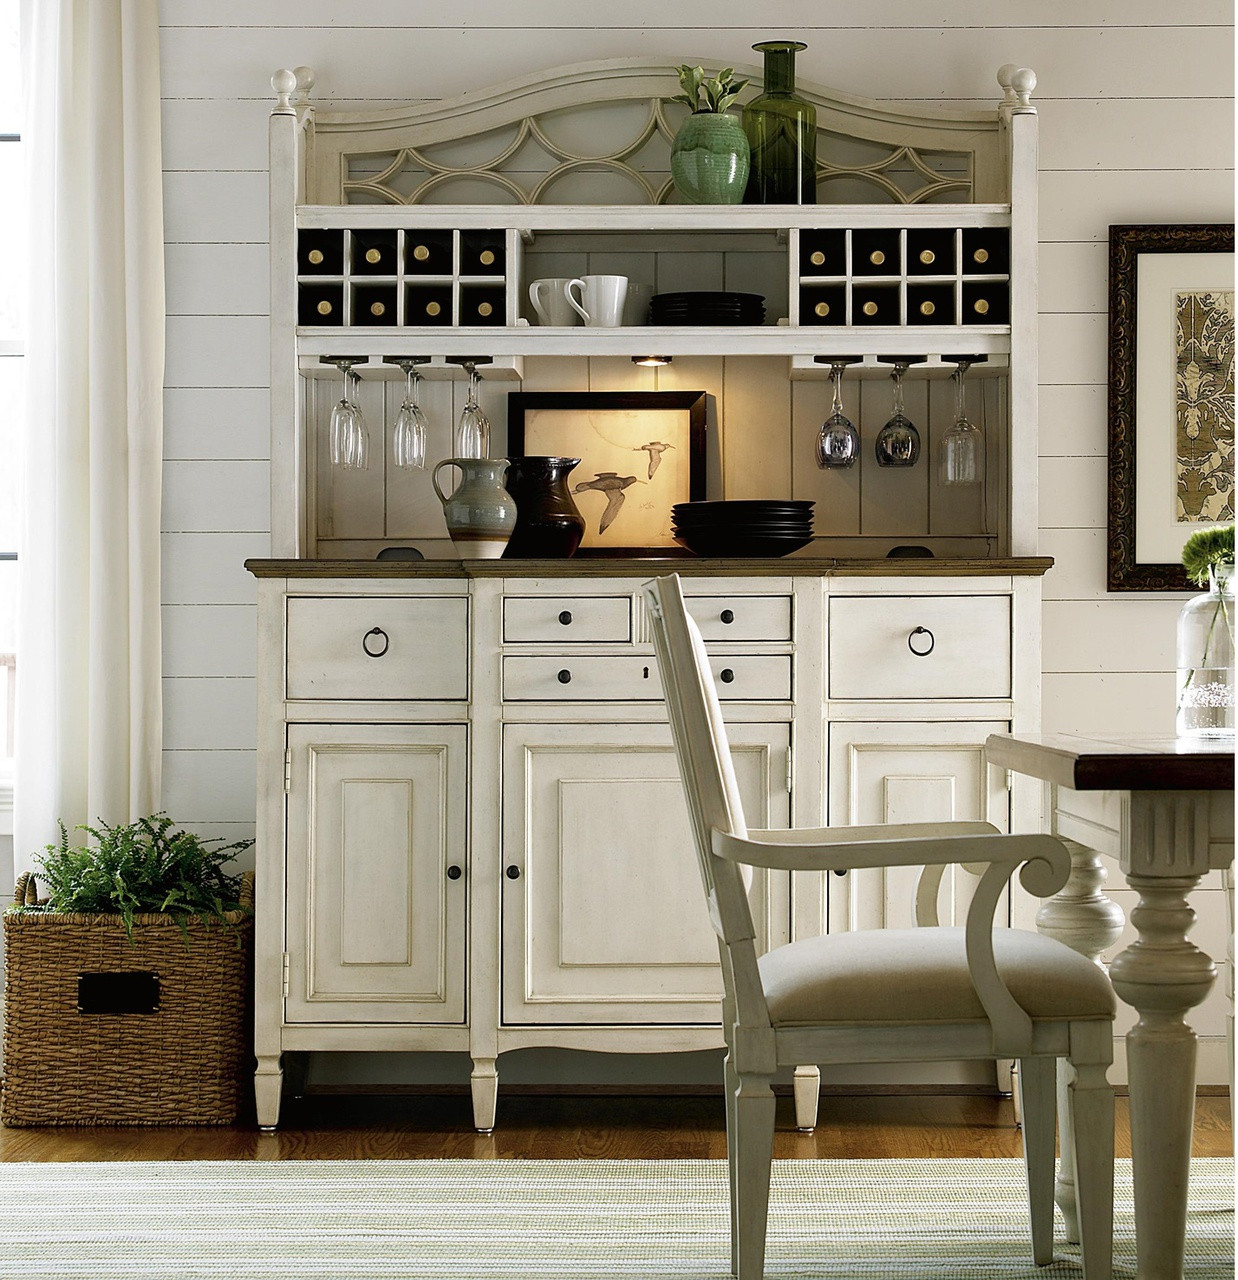 paint farmhouse rustic european essentials country hutch lg home french ideas cottage kitchen design images black hutches finishes buffet